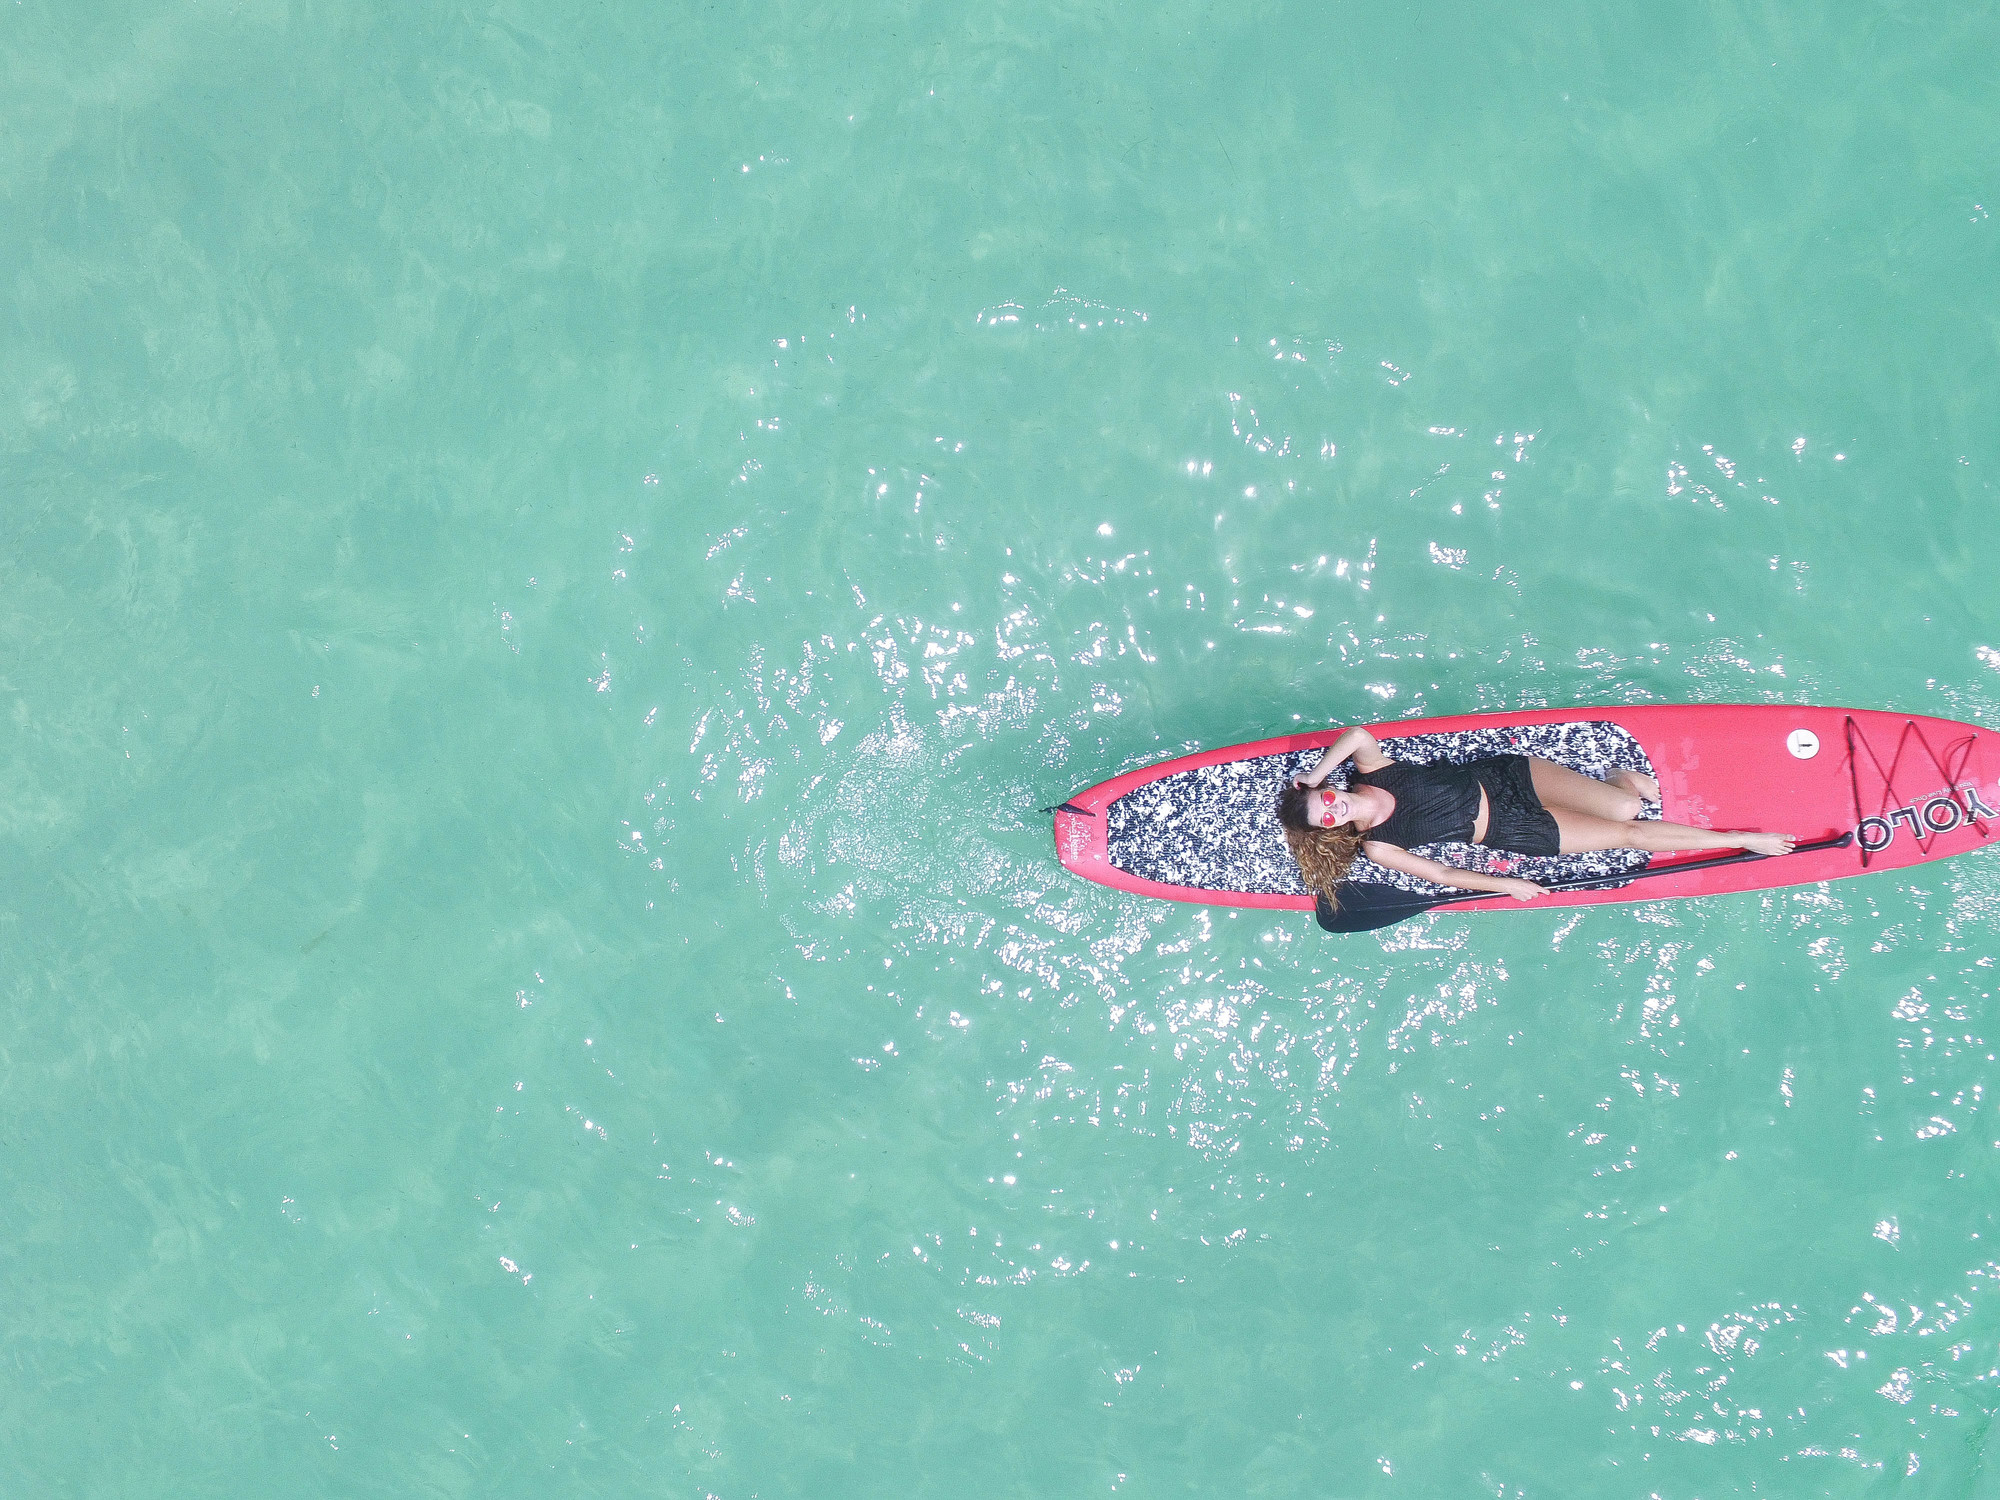 DJI PHANTOM 3 ADVANCED Destin, Florida Beach photos by lauren landmark on daily dose of charm